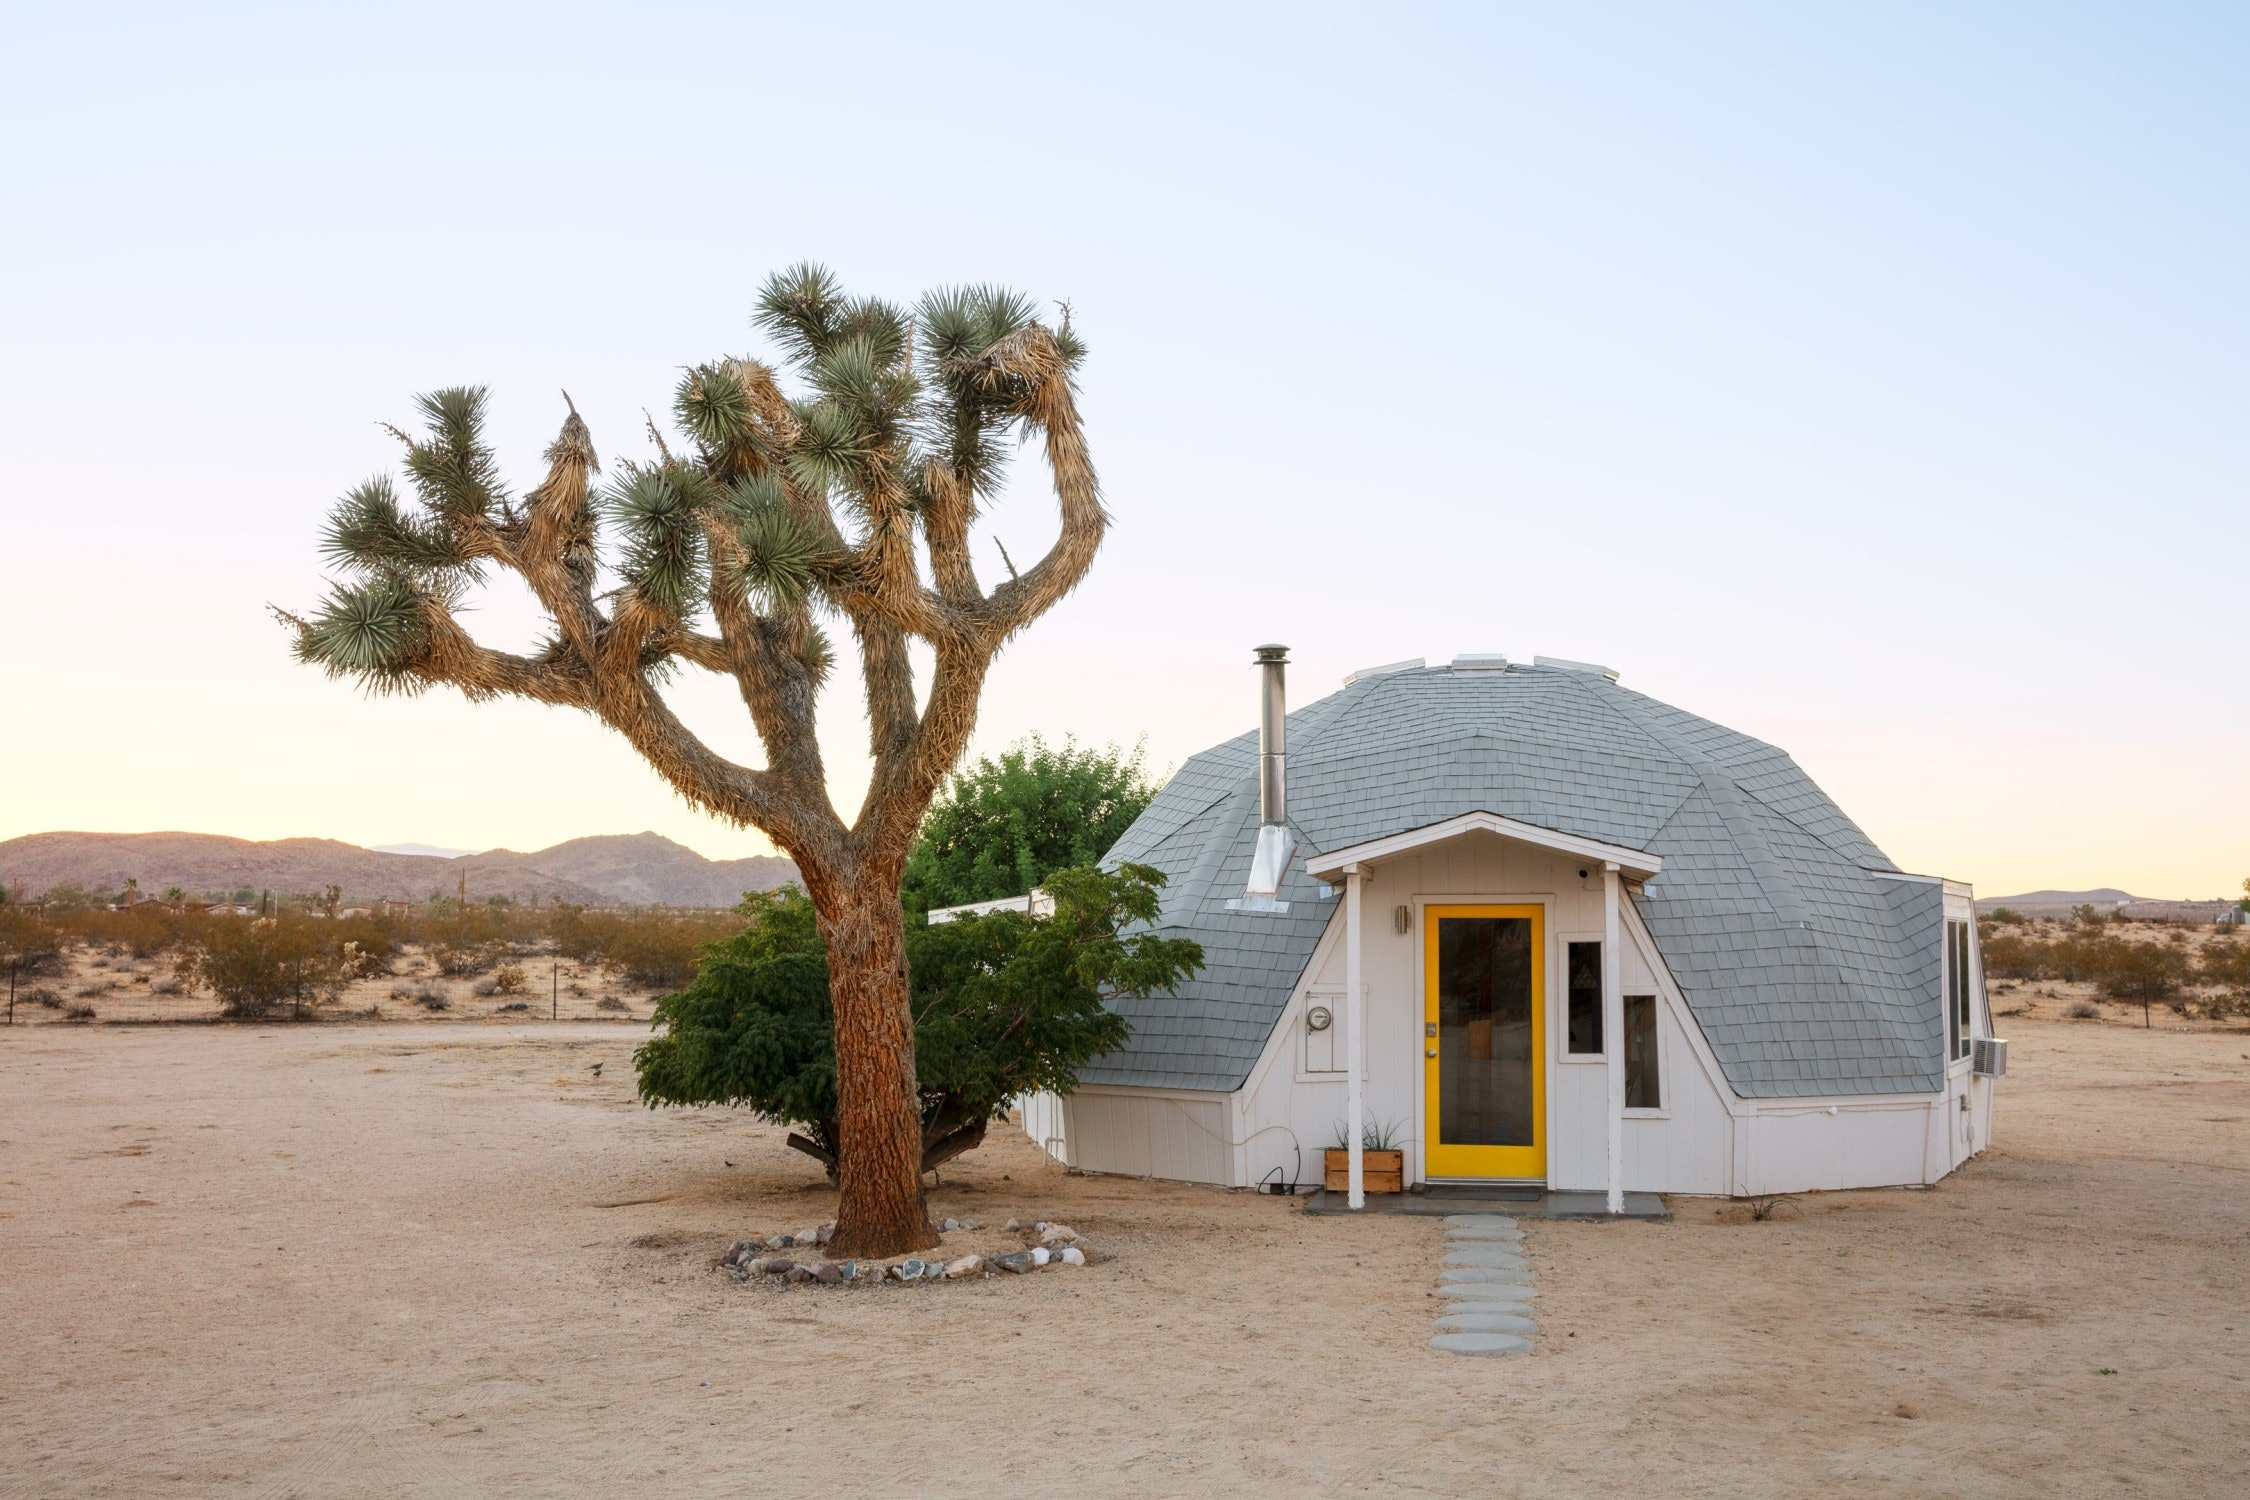 The 10 Best Desert Rentals For Those Looking To Get Away From It All ASAP